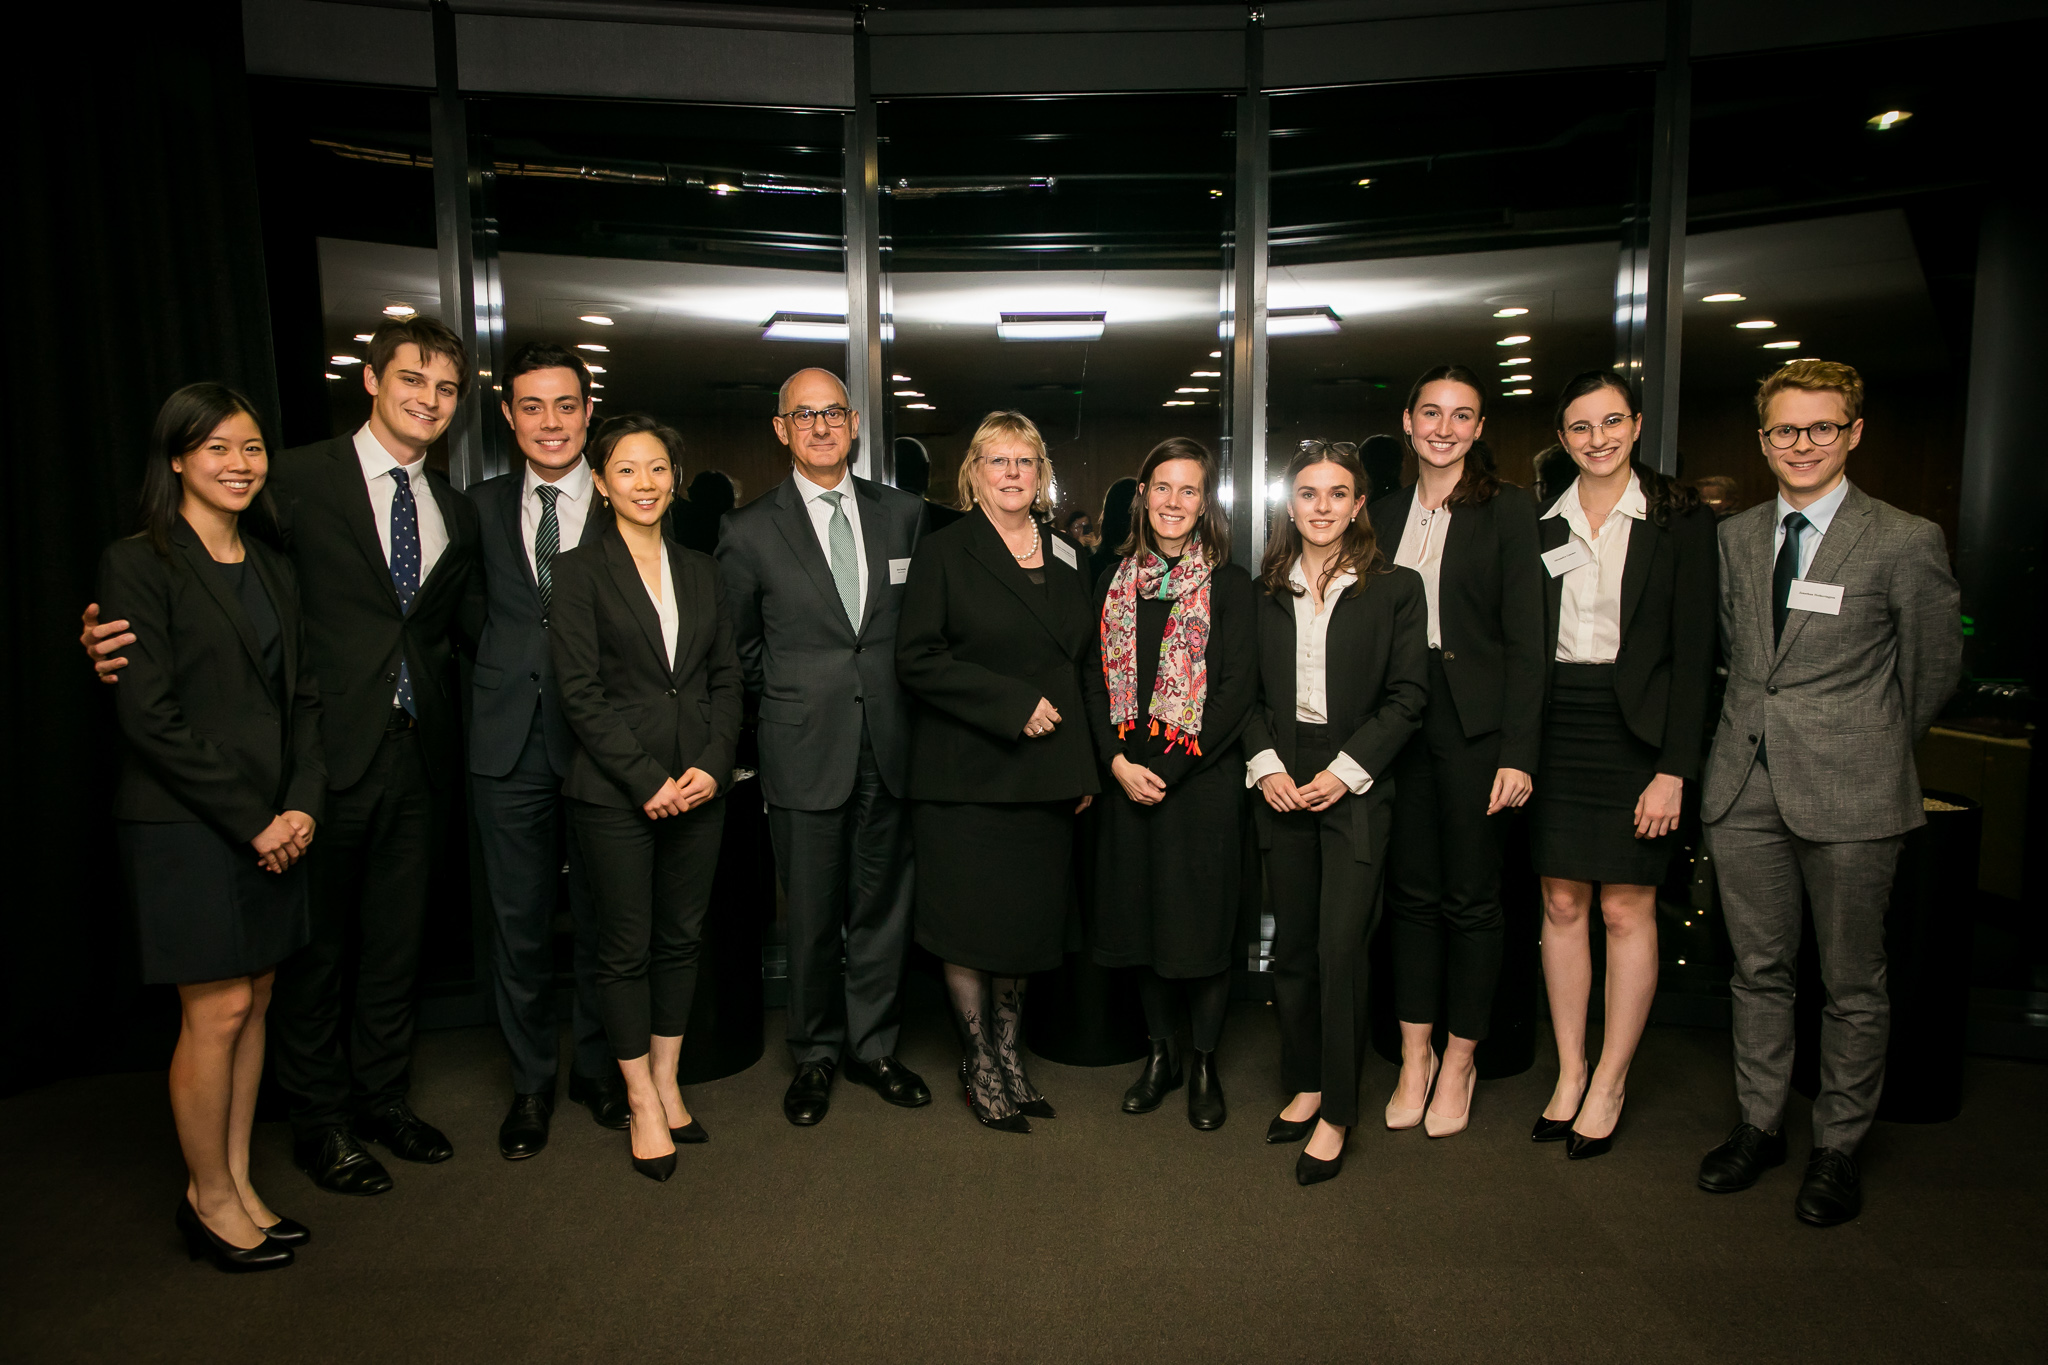 The grand finalists of the 2019 UNSW Private Law Moot, from the University of Sydney (left) and University of Technology, Sydney (right), with The Honourable Justice Julie Ward (New South Wales Supreme Court); Jessica Hudson (UNSW Law); John Samaha (Partner, Allen & Overy).